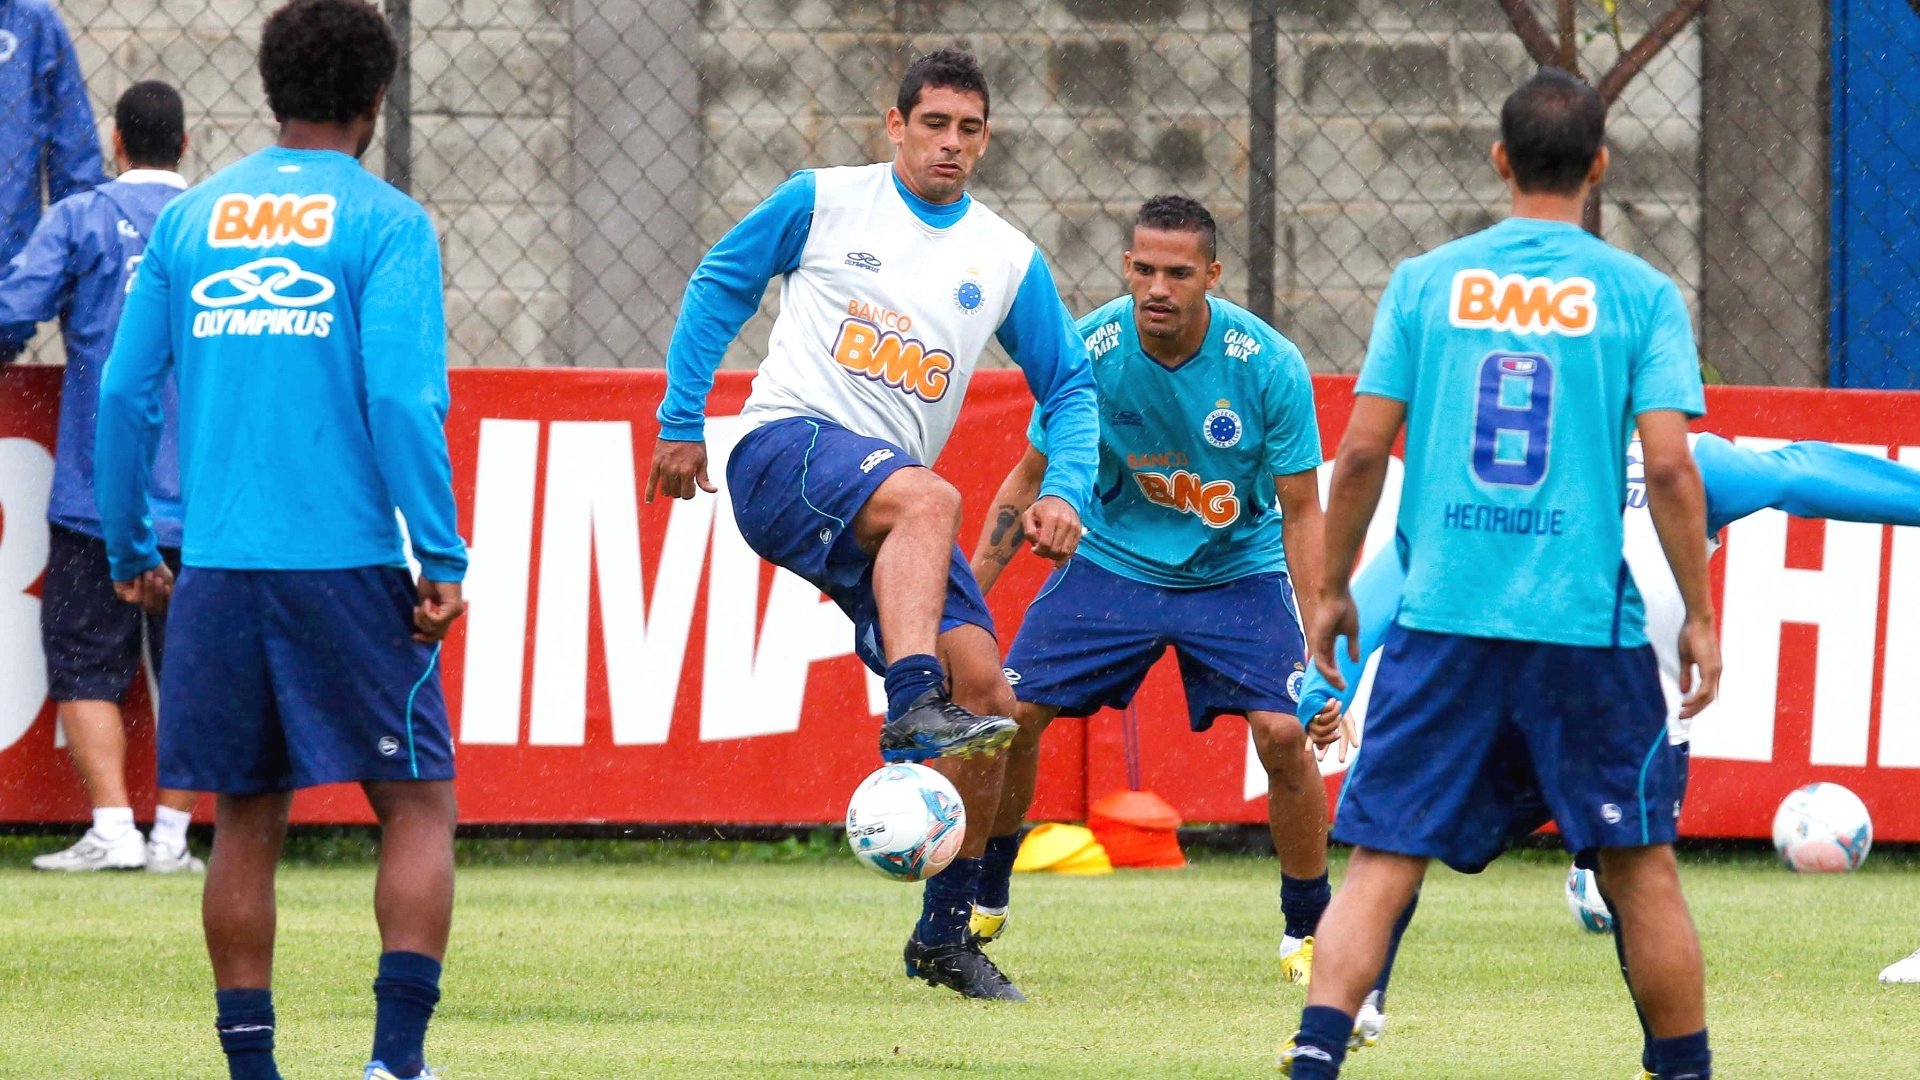 Diego Souza domina a bola durante treino do Cruzeiro na Toca da Raposa II (1/3/2013)